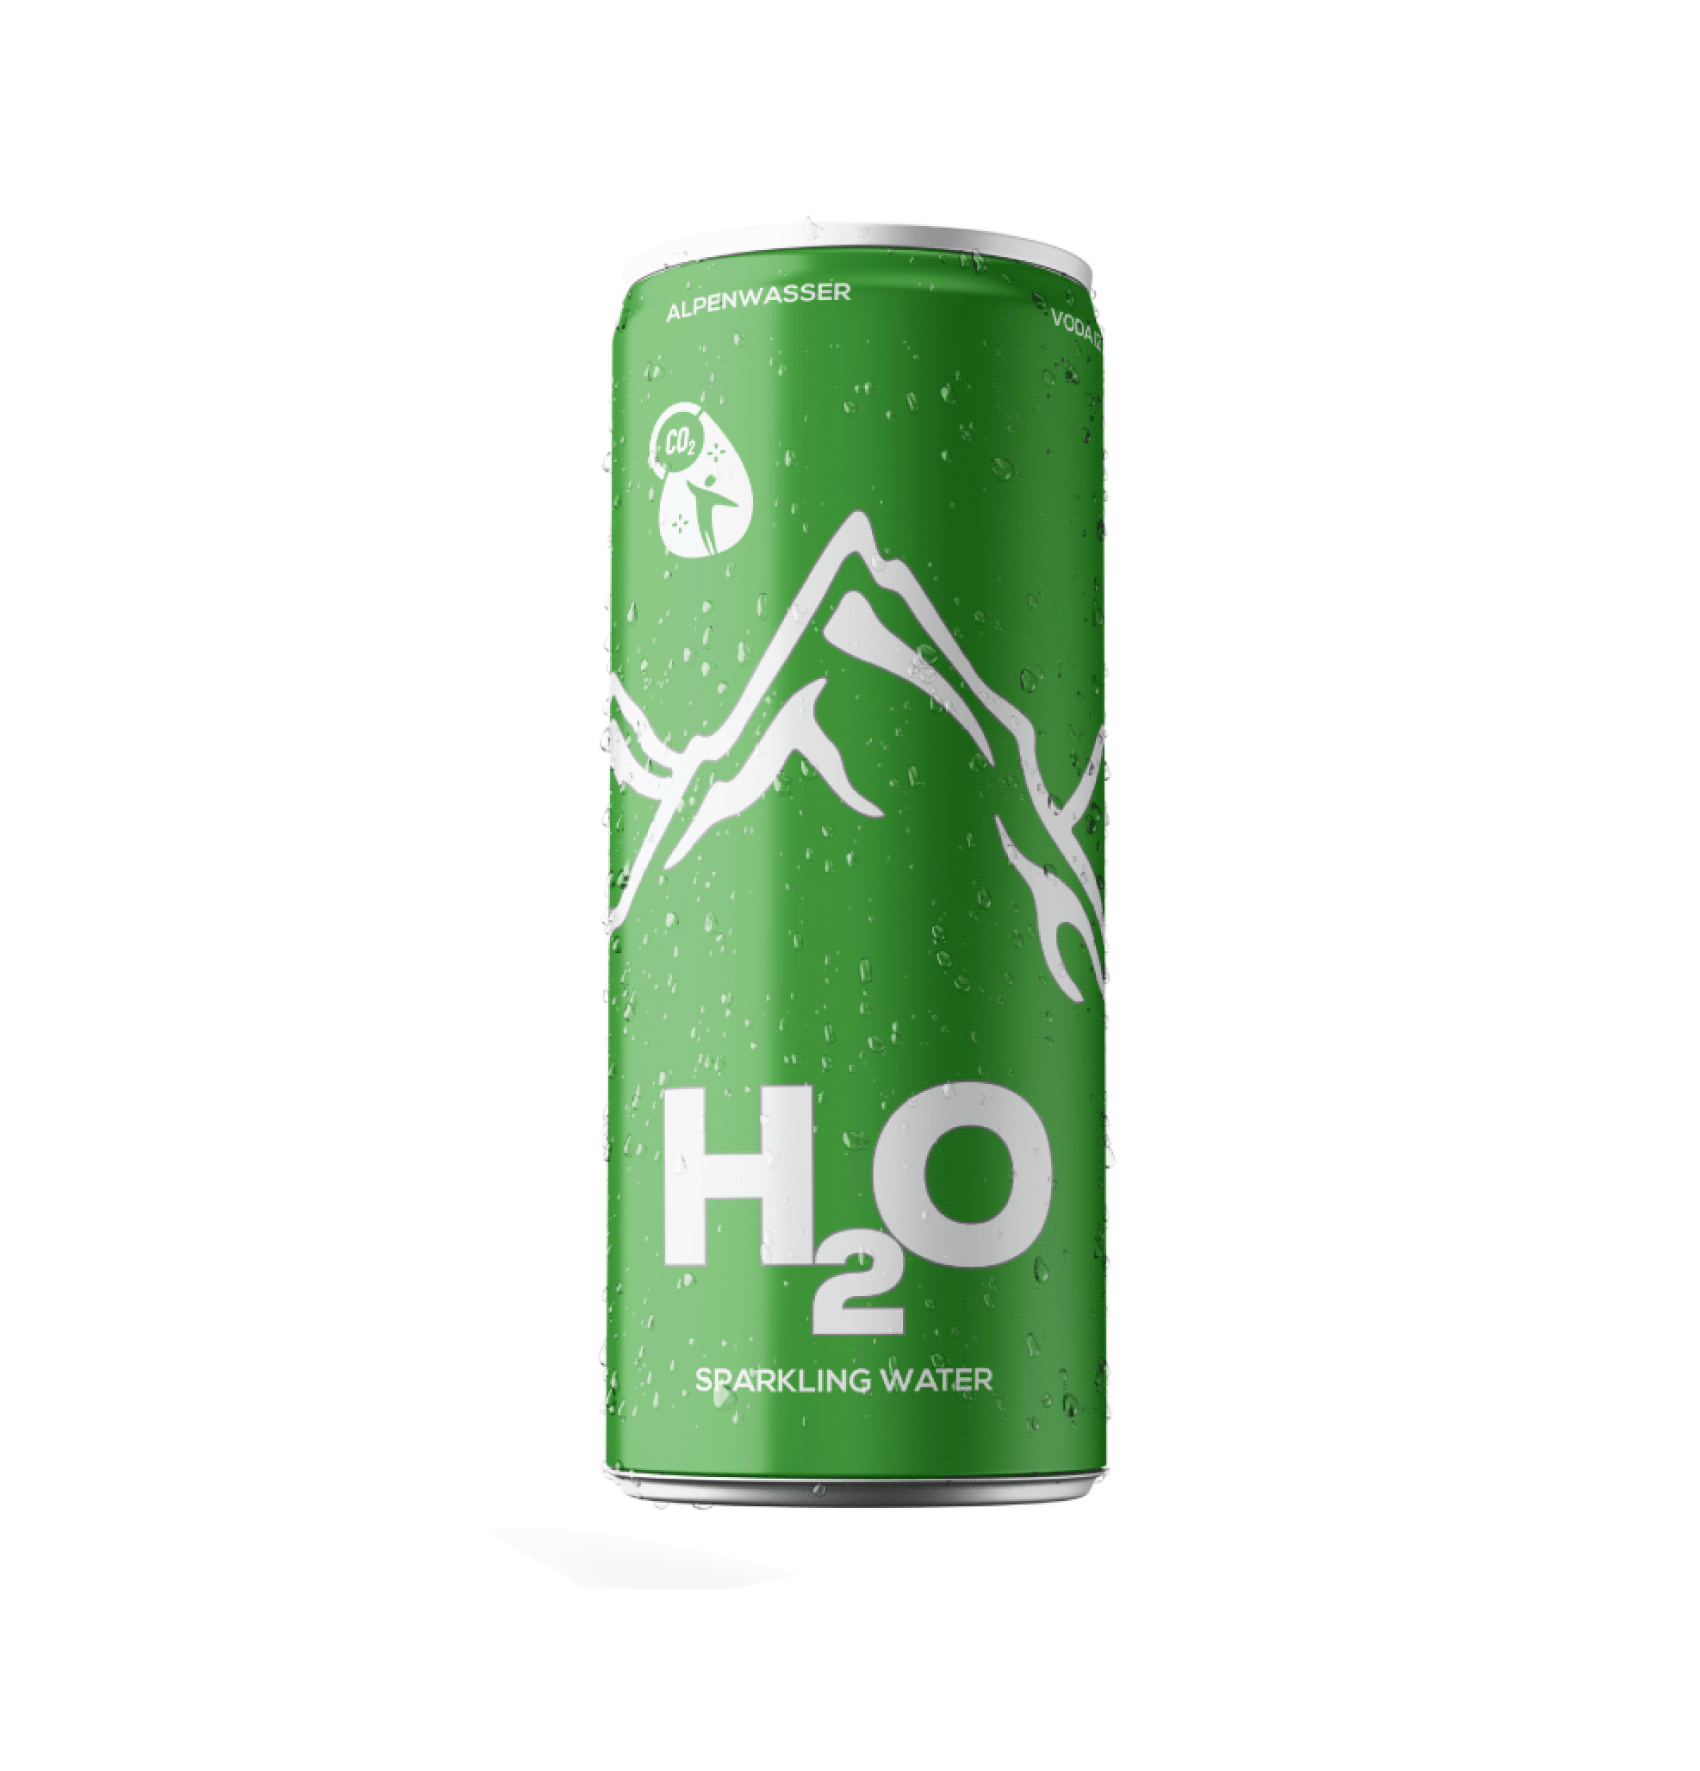 H2O – WATER FROM THE ALPS